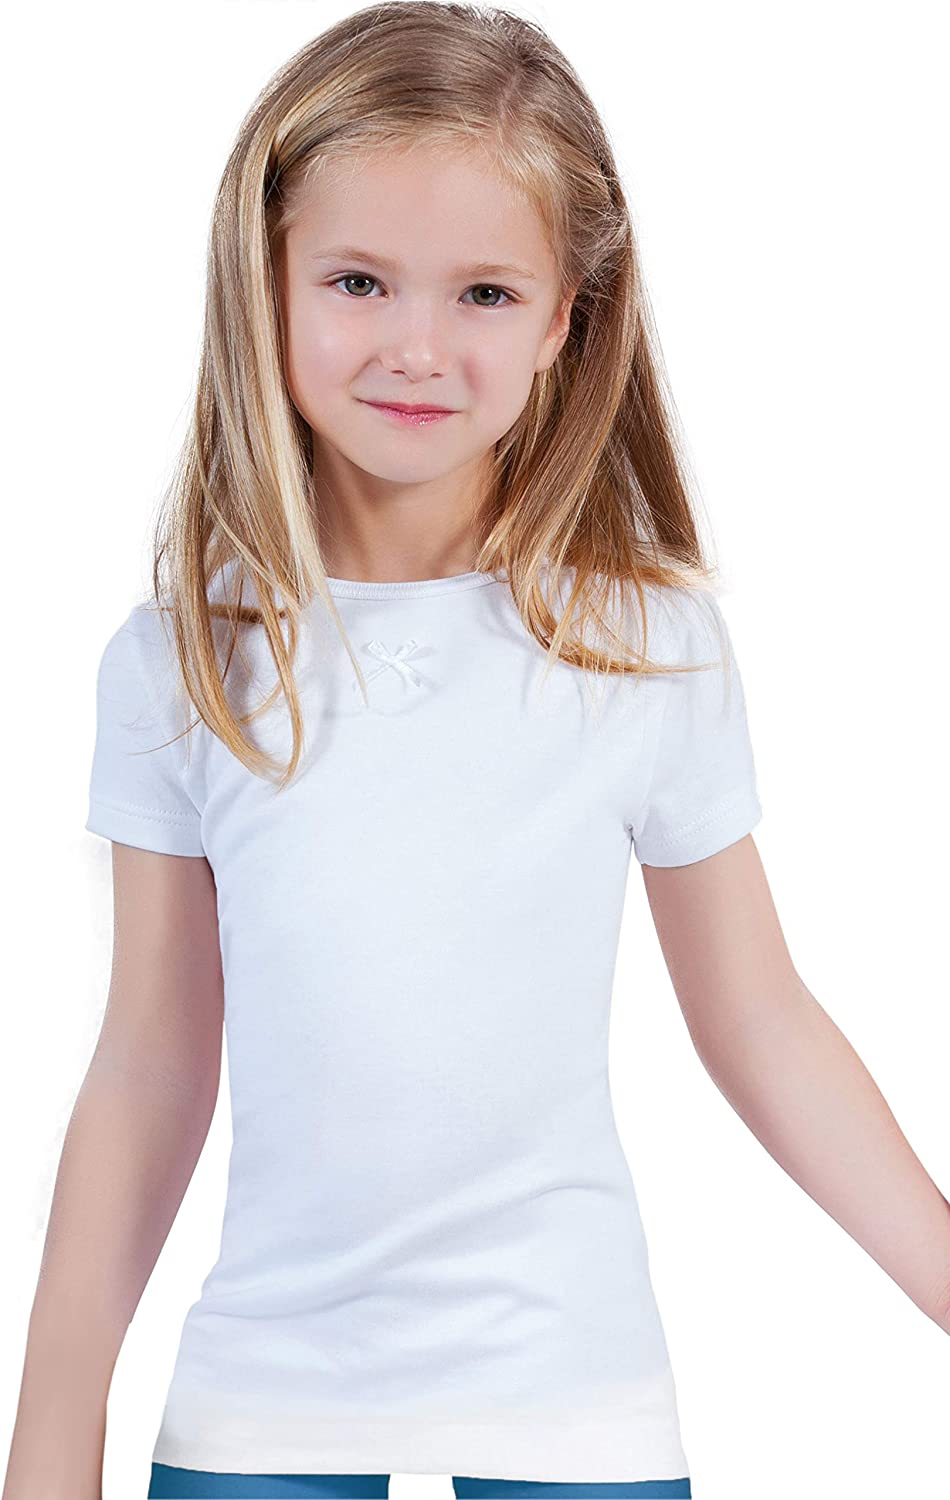 MaRe Premium Quality 100% Brushed Girl's Miami Mall Boy's Slee Short Import Cotton